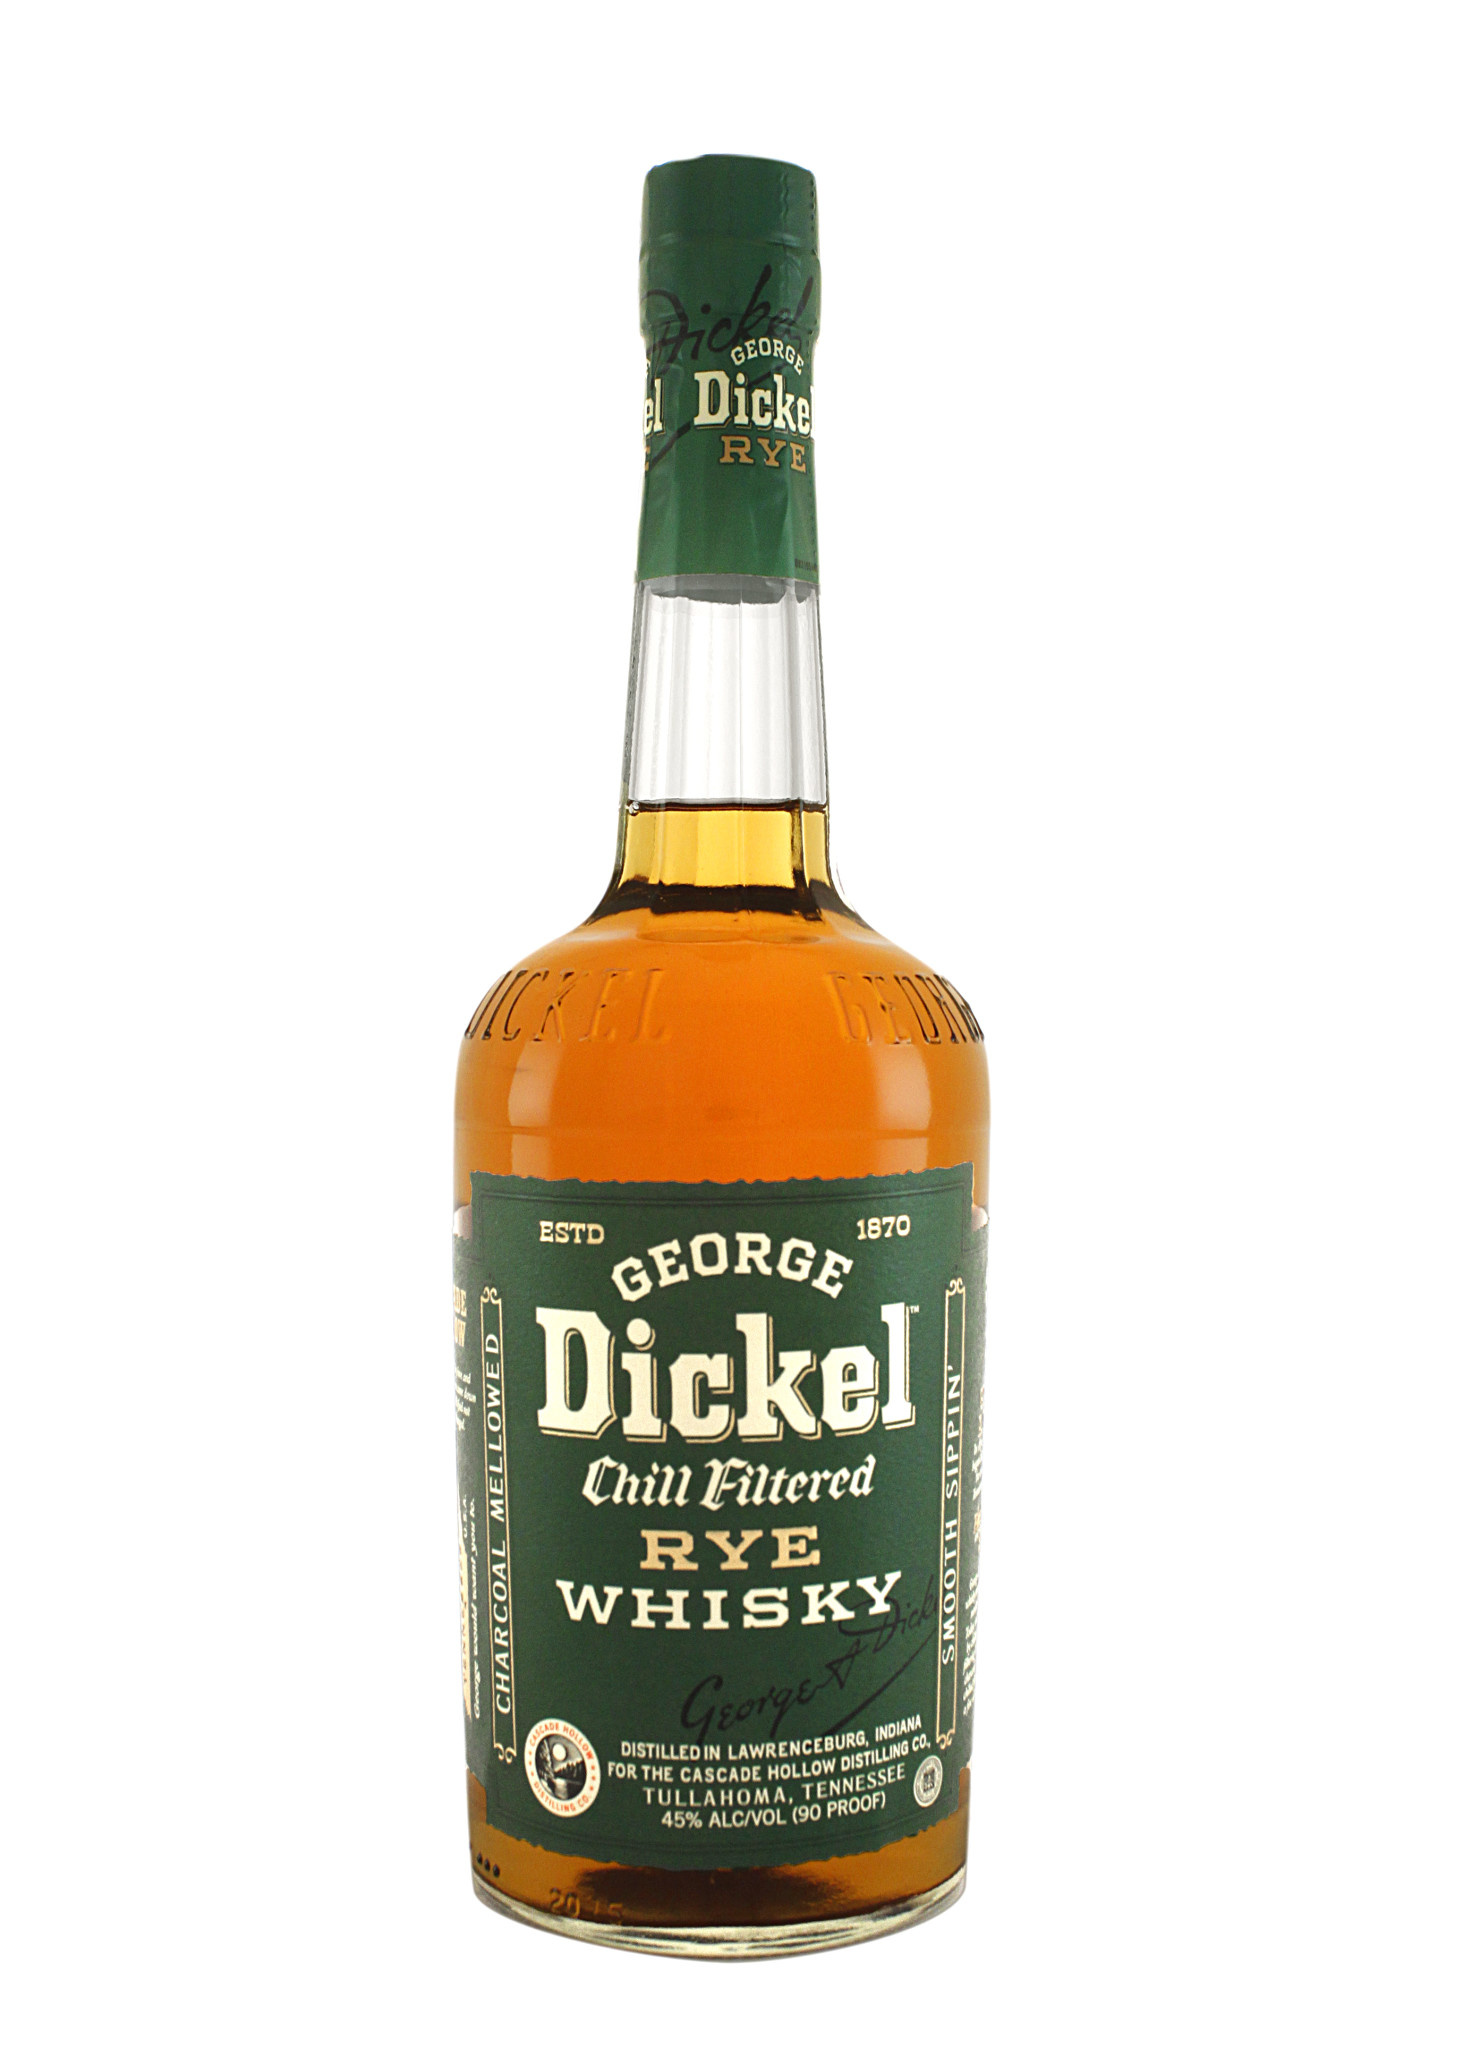 George Dickel Rye Whiskey, Tennessee